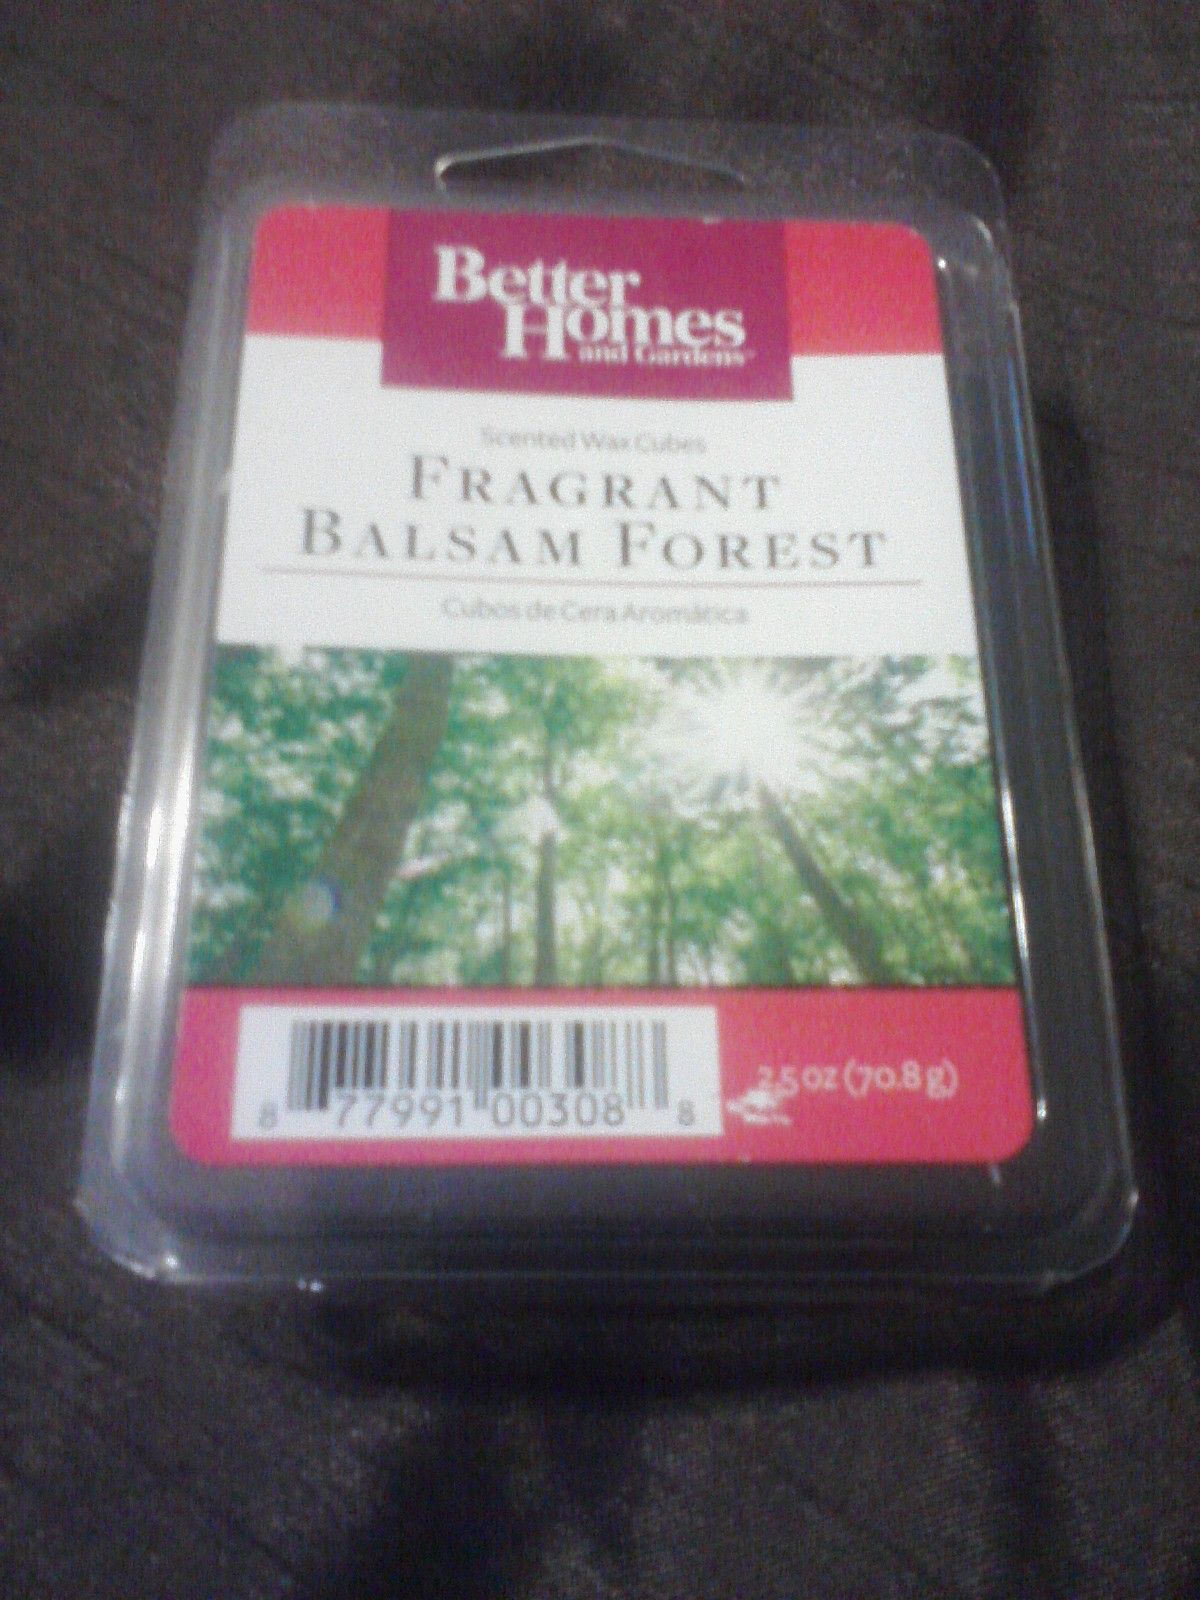 Free better homes gardens scented wax cubes who said for Better homes and gardens scented wax cubes